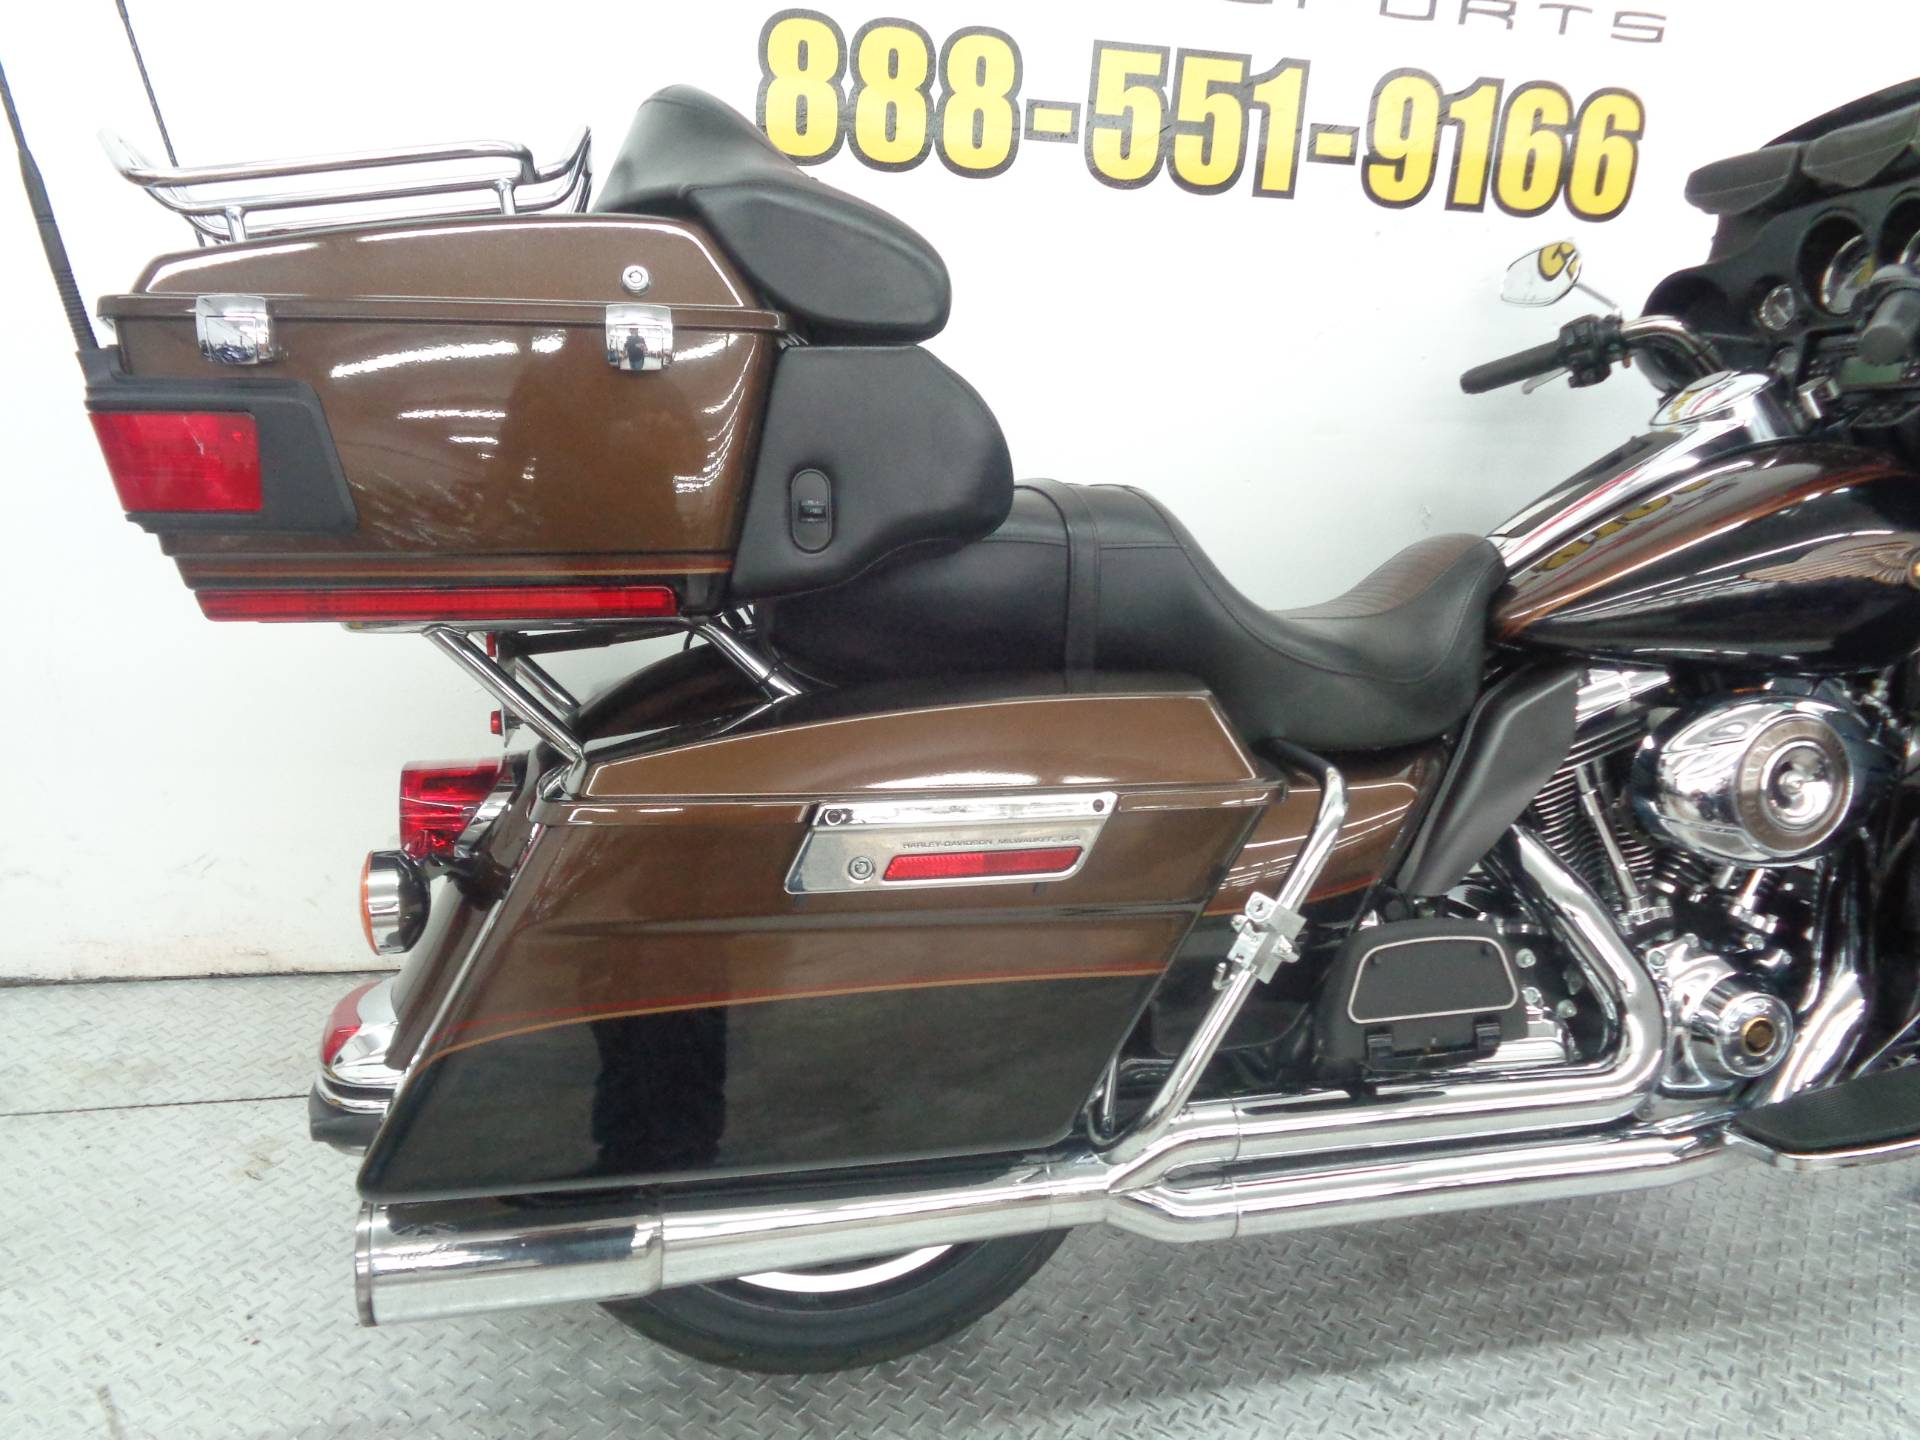 2013 Harley-Davidson Electra Glide® Ultra Limited 110th Anniversary Edition in Tulsa, Oklahoma - Photo 12